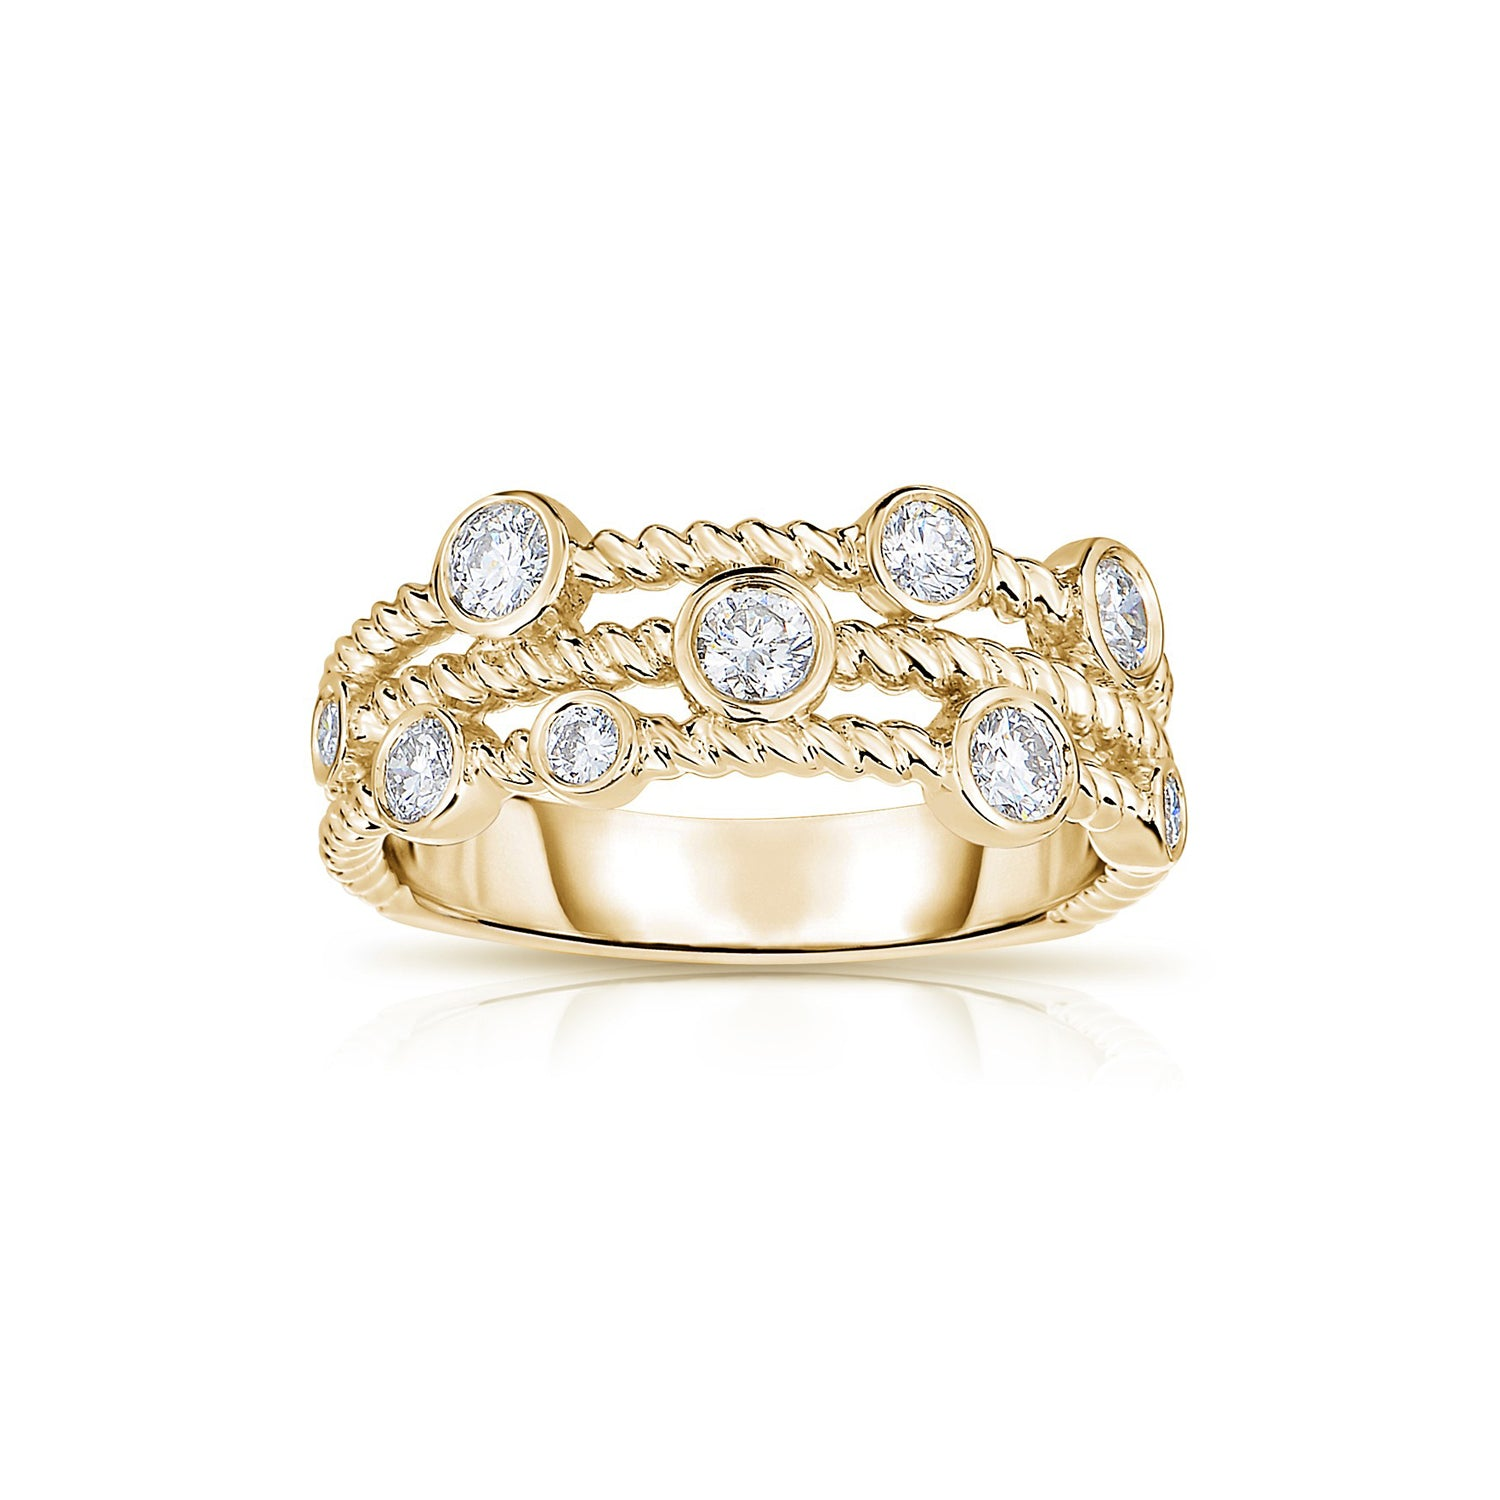 Three Strand Rope Design Diamond Ring, 14K Yellow Gold